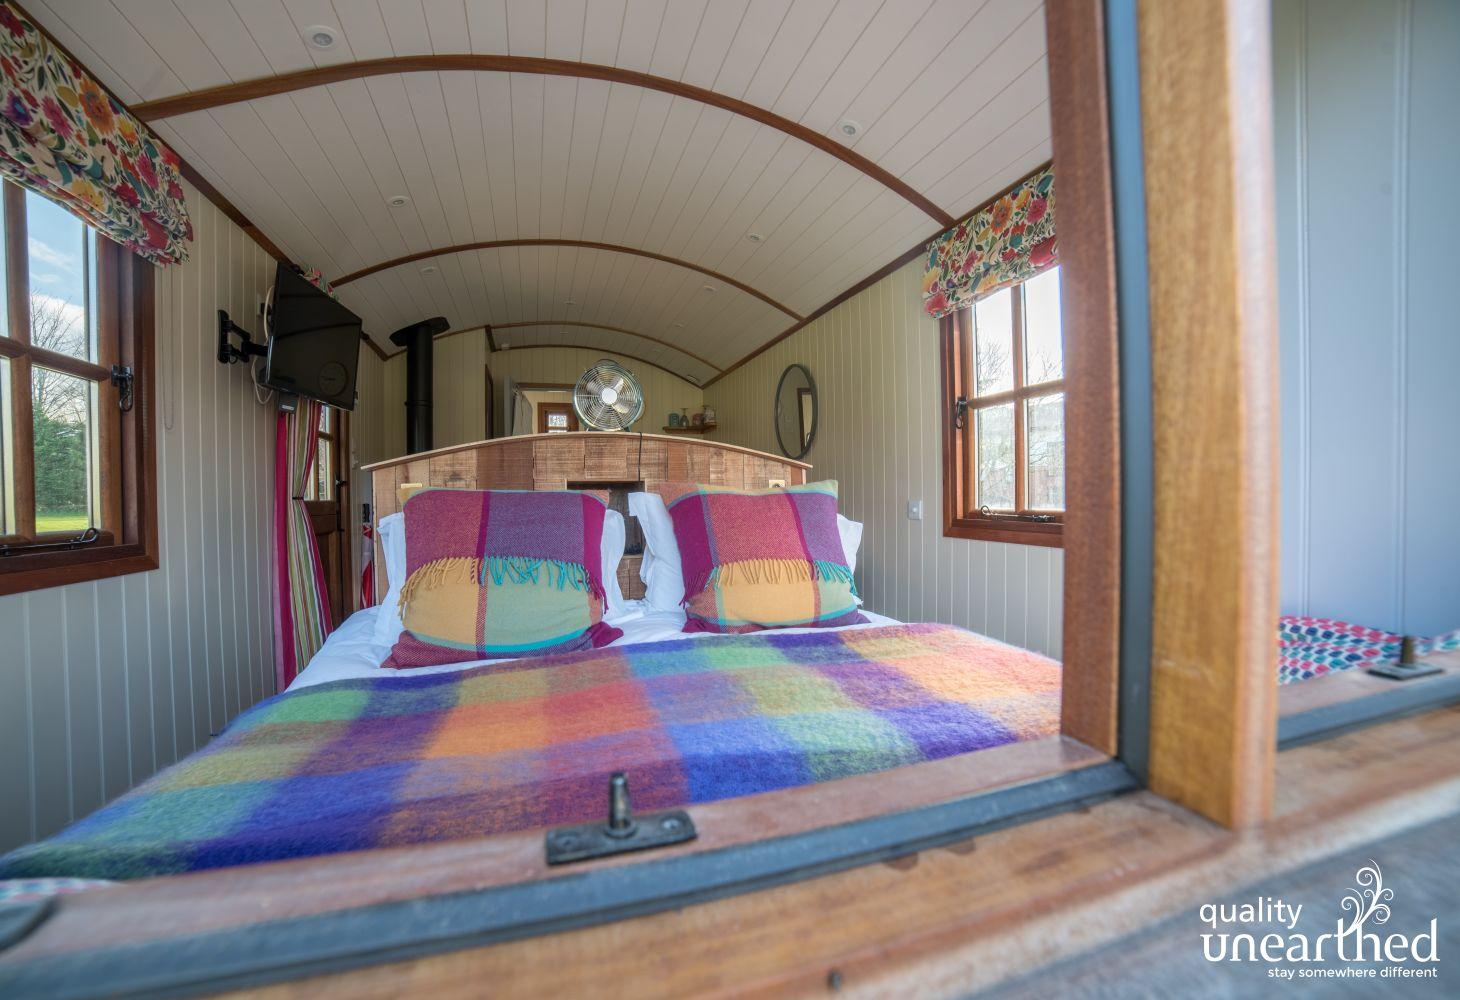 Parkway Shepherd's Hut in Monmouthshire